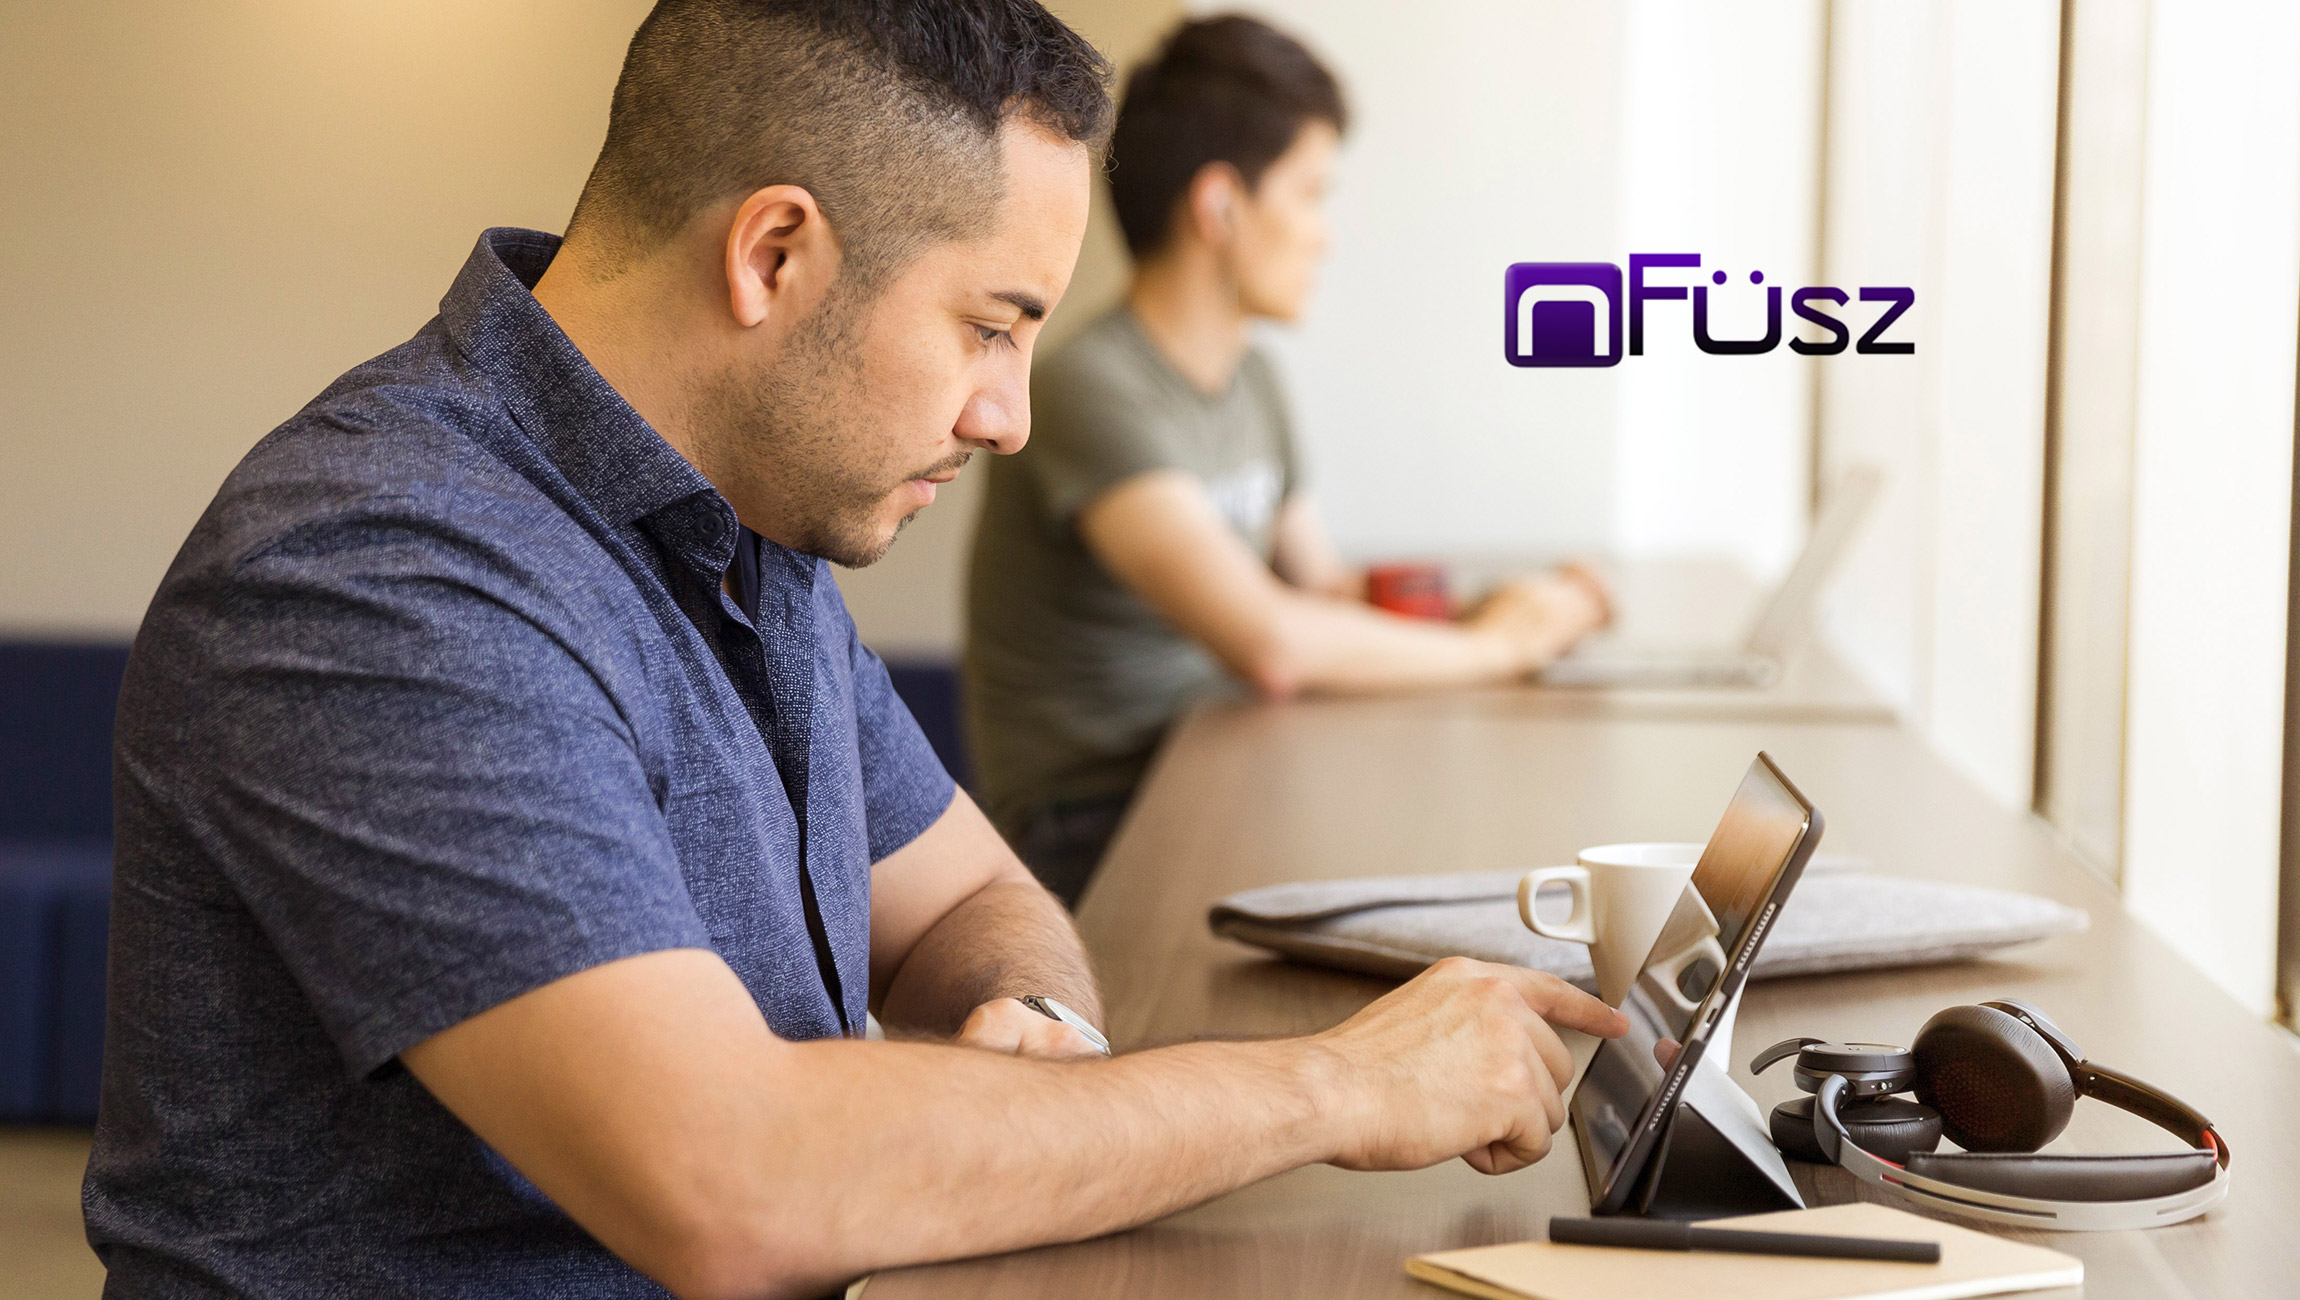 nFusz Files Patent Application for its In-Video CTA Technology